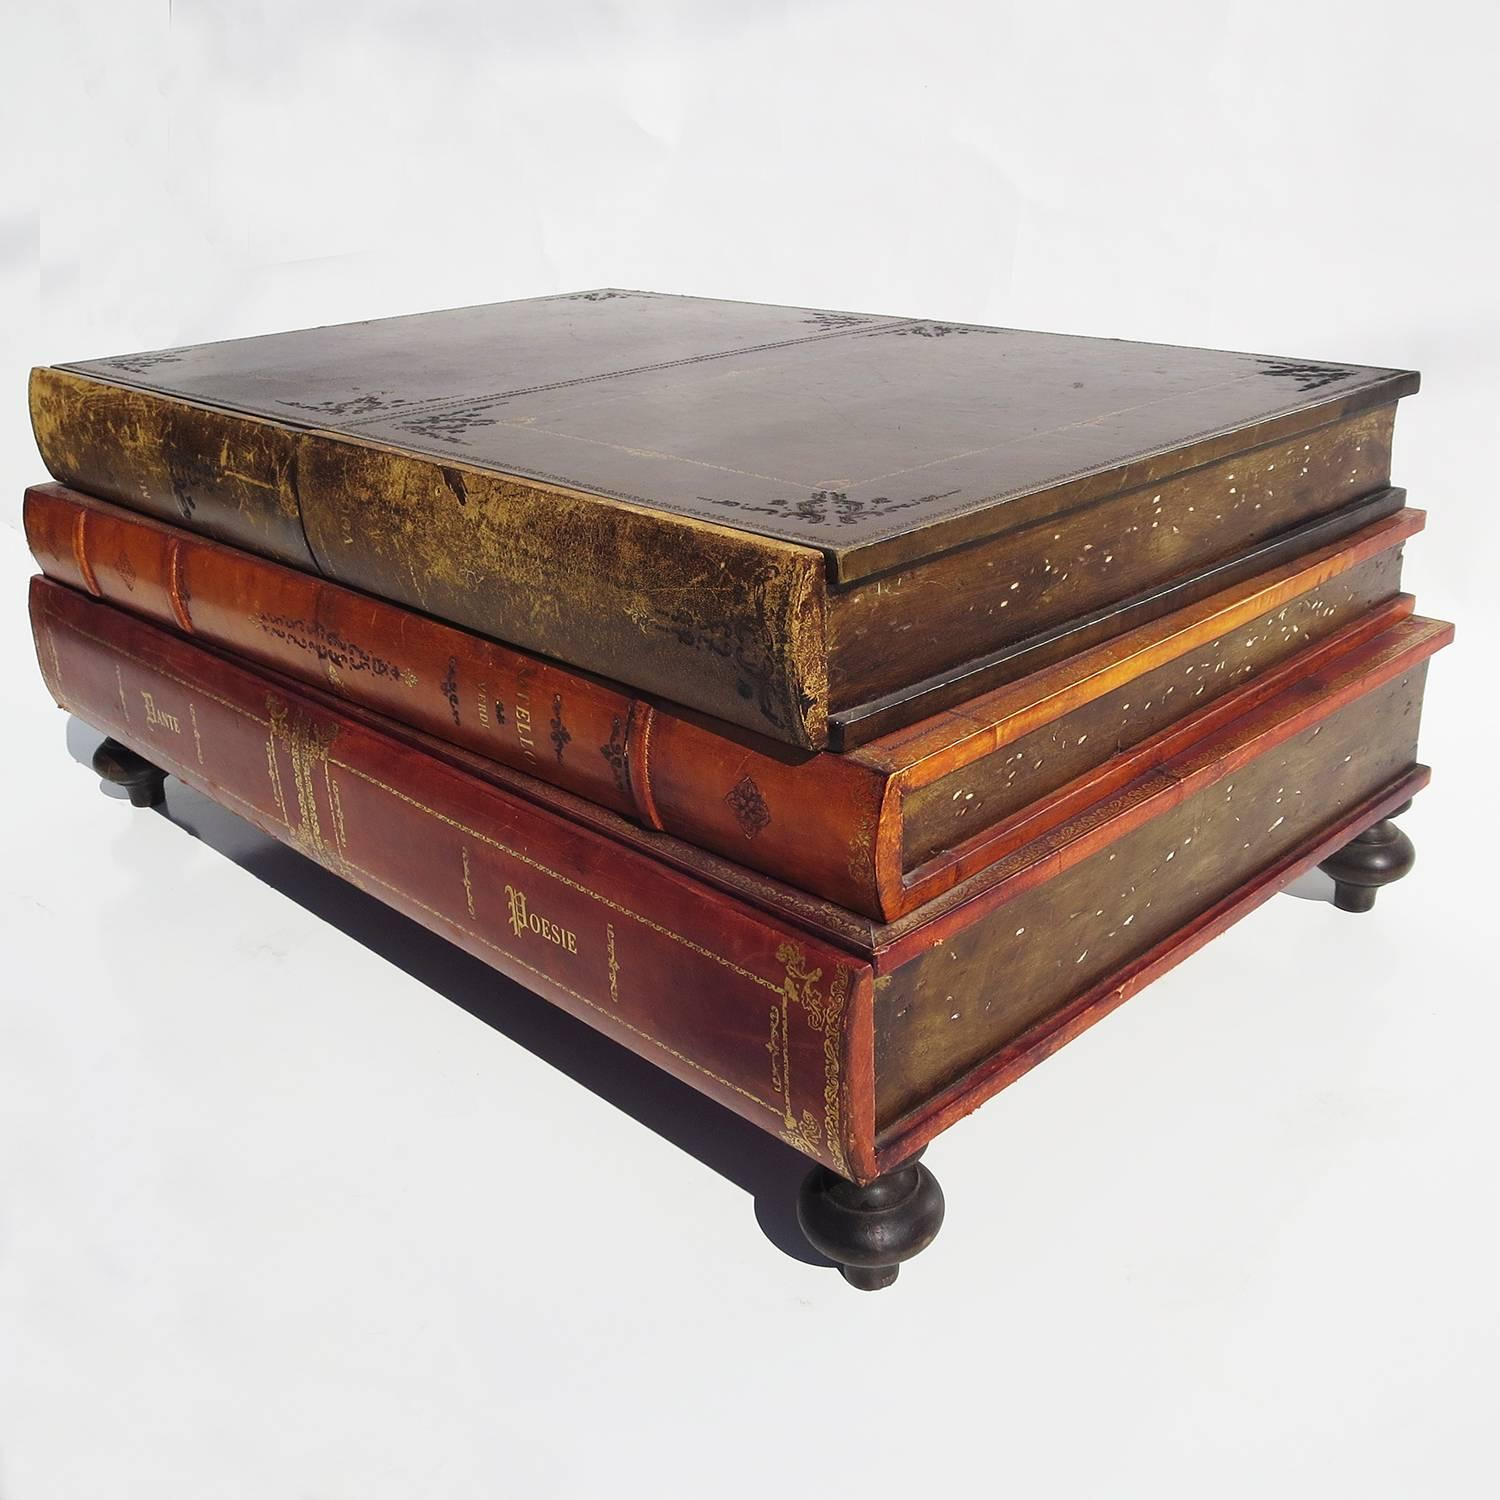 Book Furniture: 1960s Italian Leather Books Coffee Table At 1stdibs